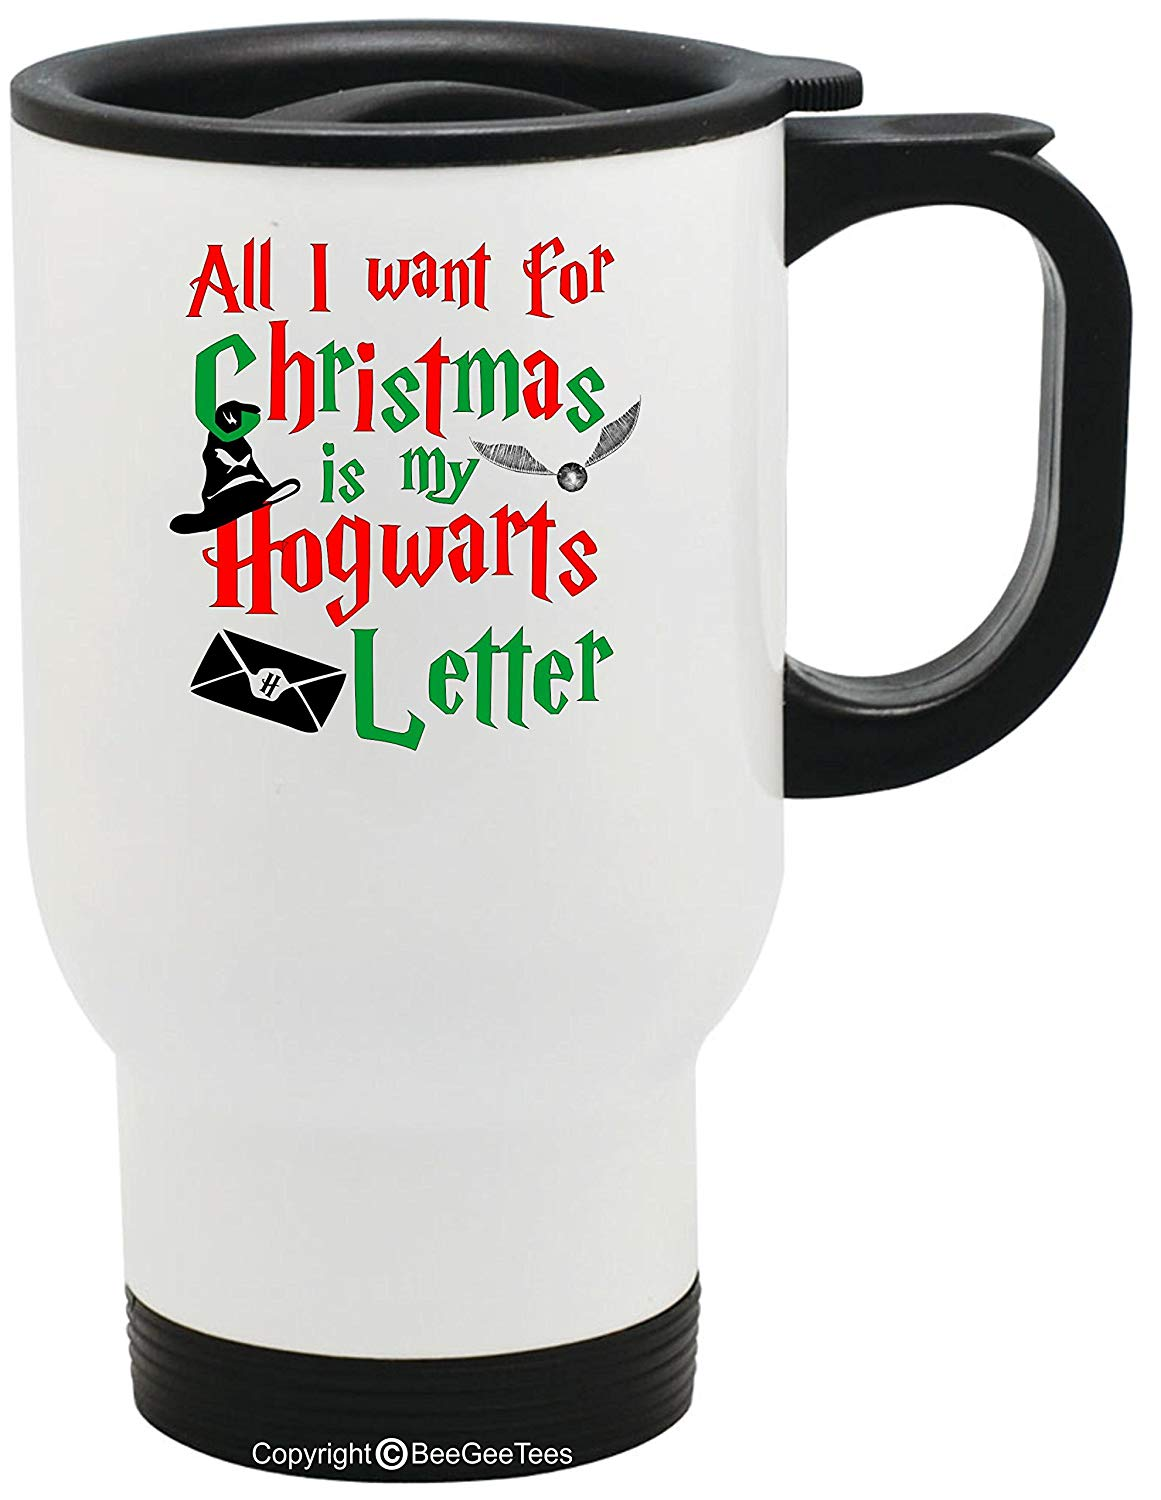 All I Want For Christmas Is My Hogwarts Letter Funny Wizard Stainless Steel Travel Mug by BeeGeeTees (14 oz)